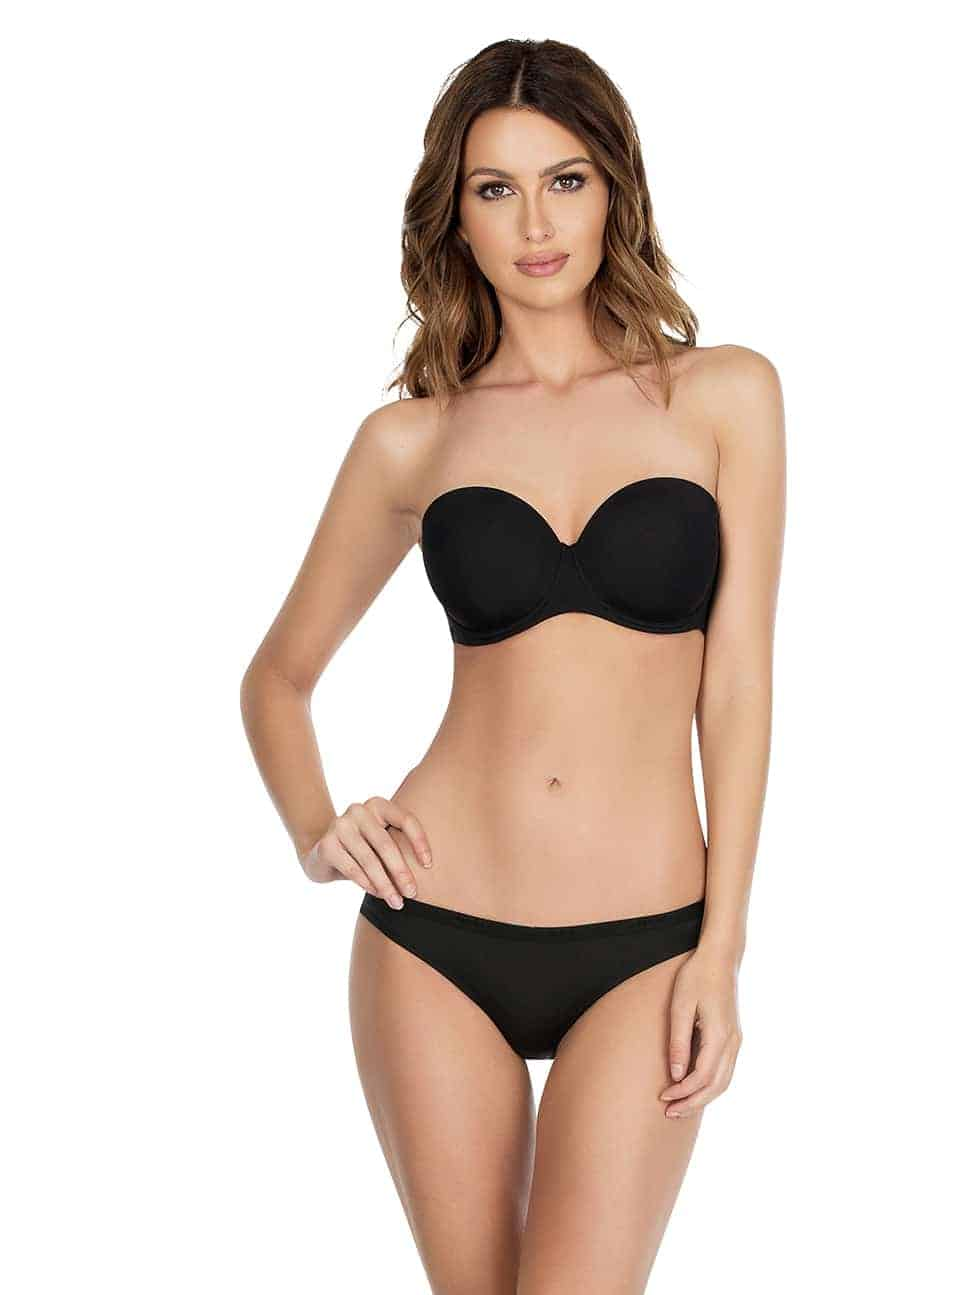 Lynn P13112 P13013Strapless - Lynn Push-up Strapless Bra - Black - P13112